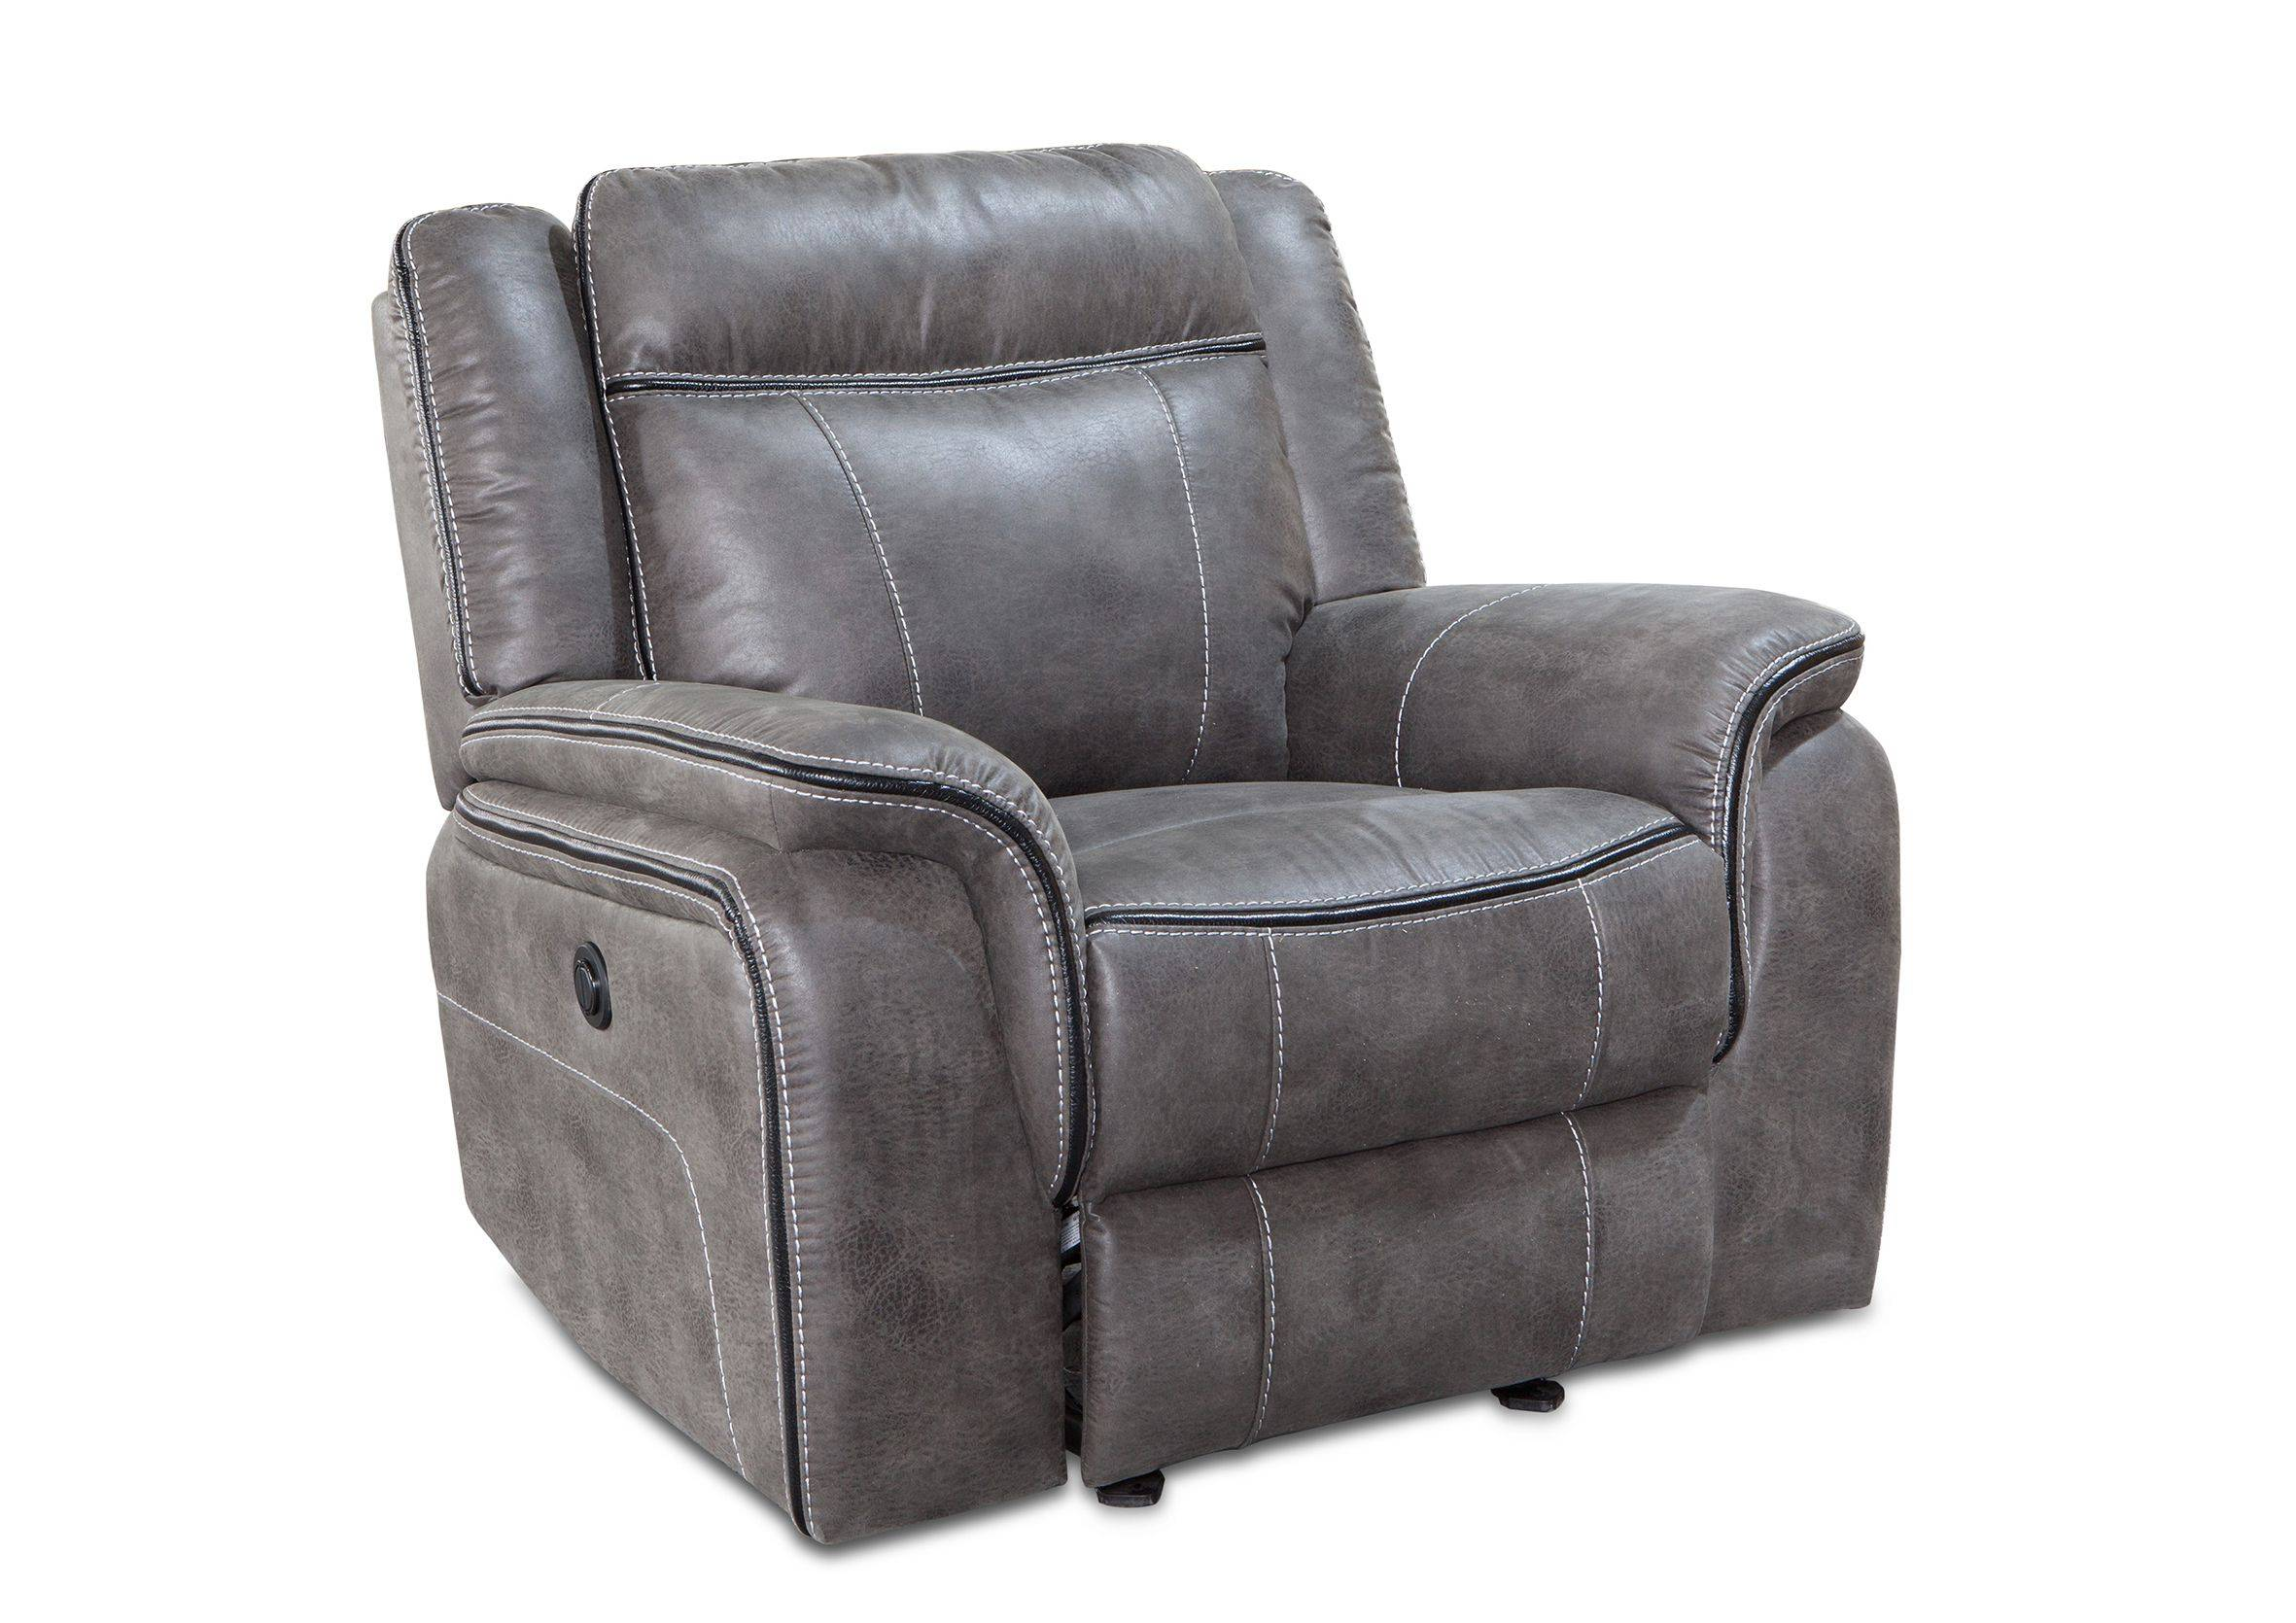 China Best Selling 3 Seat Recliner chair Simple design